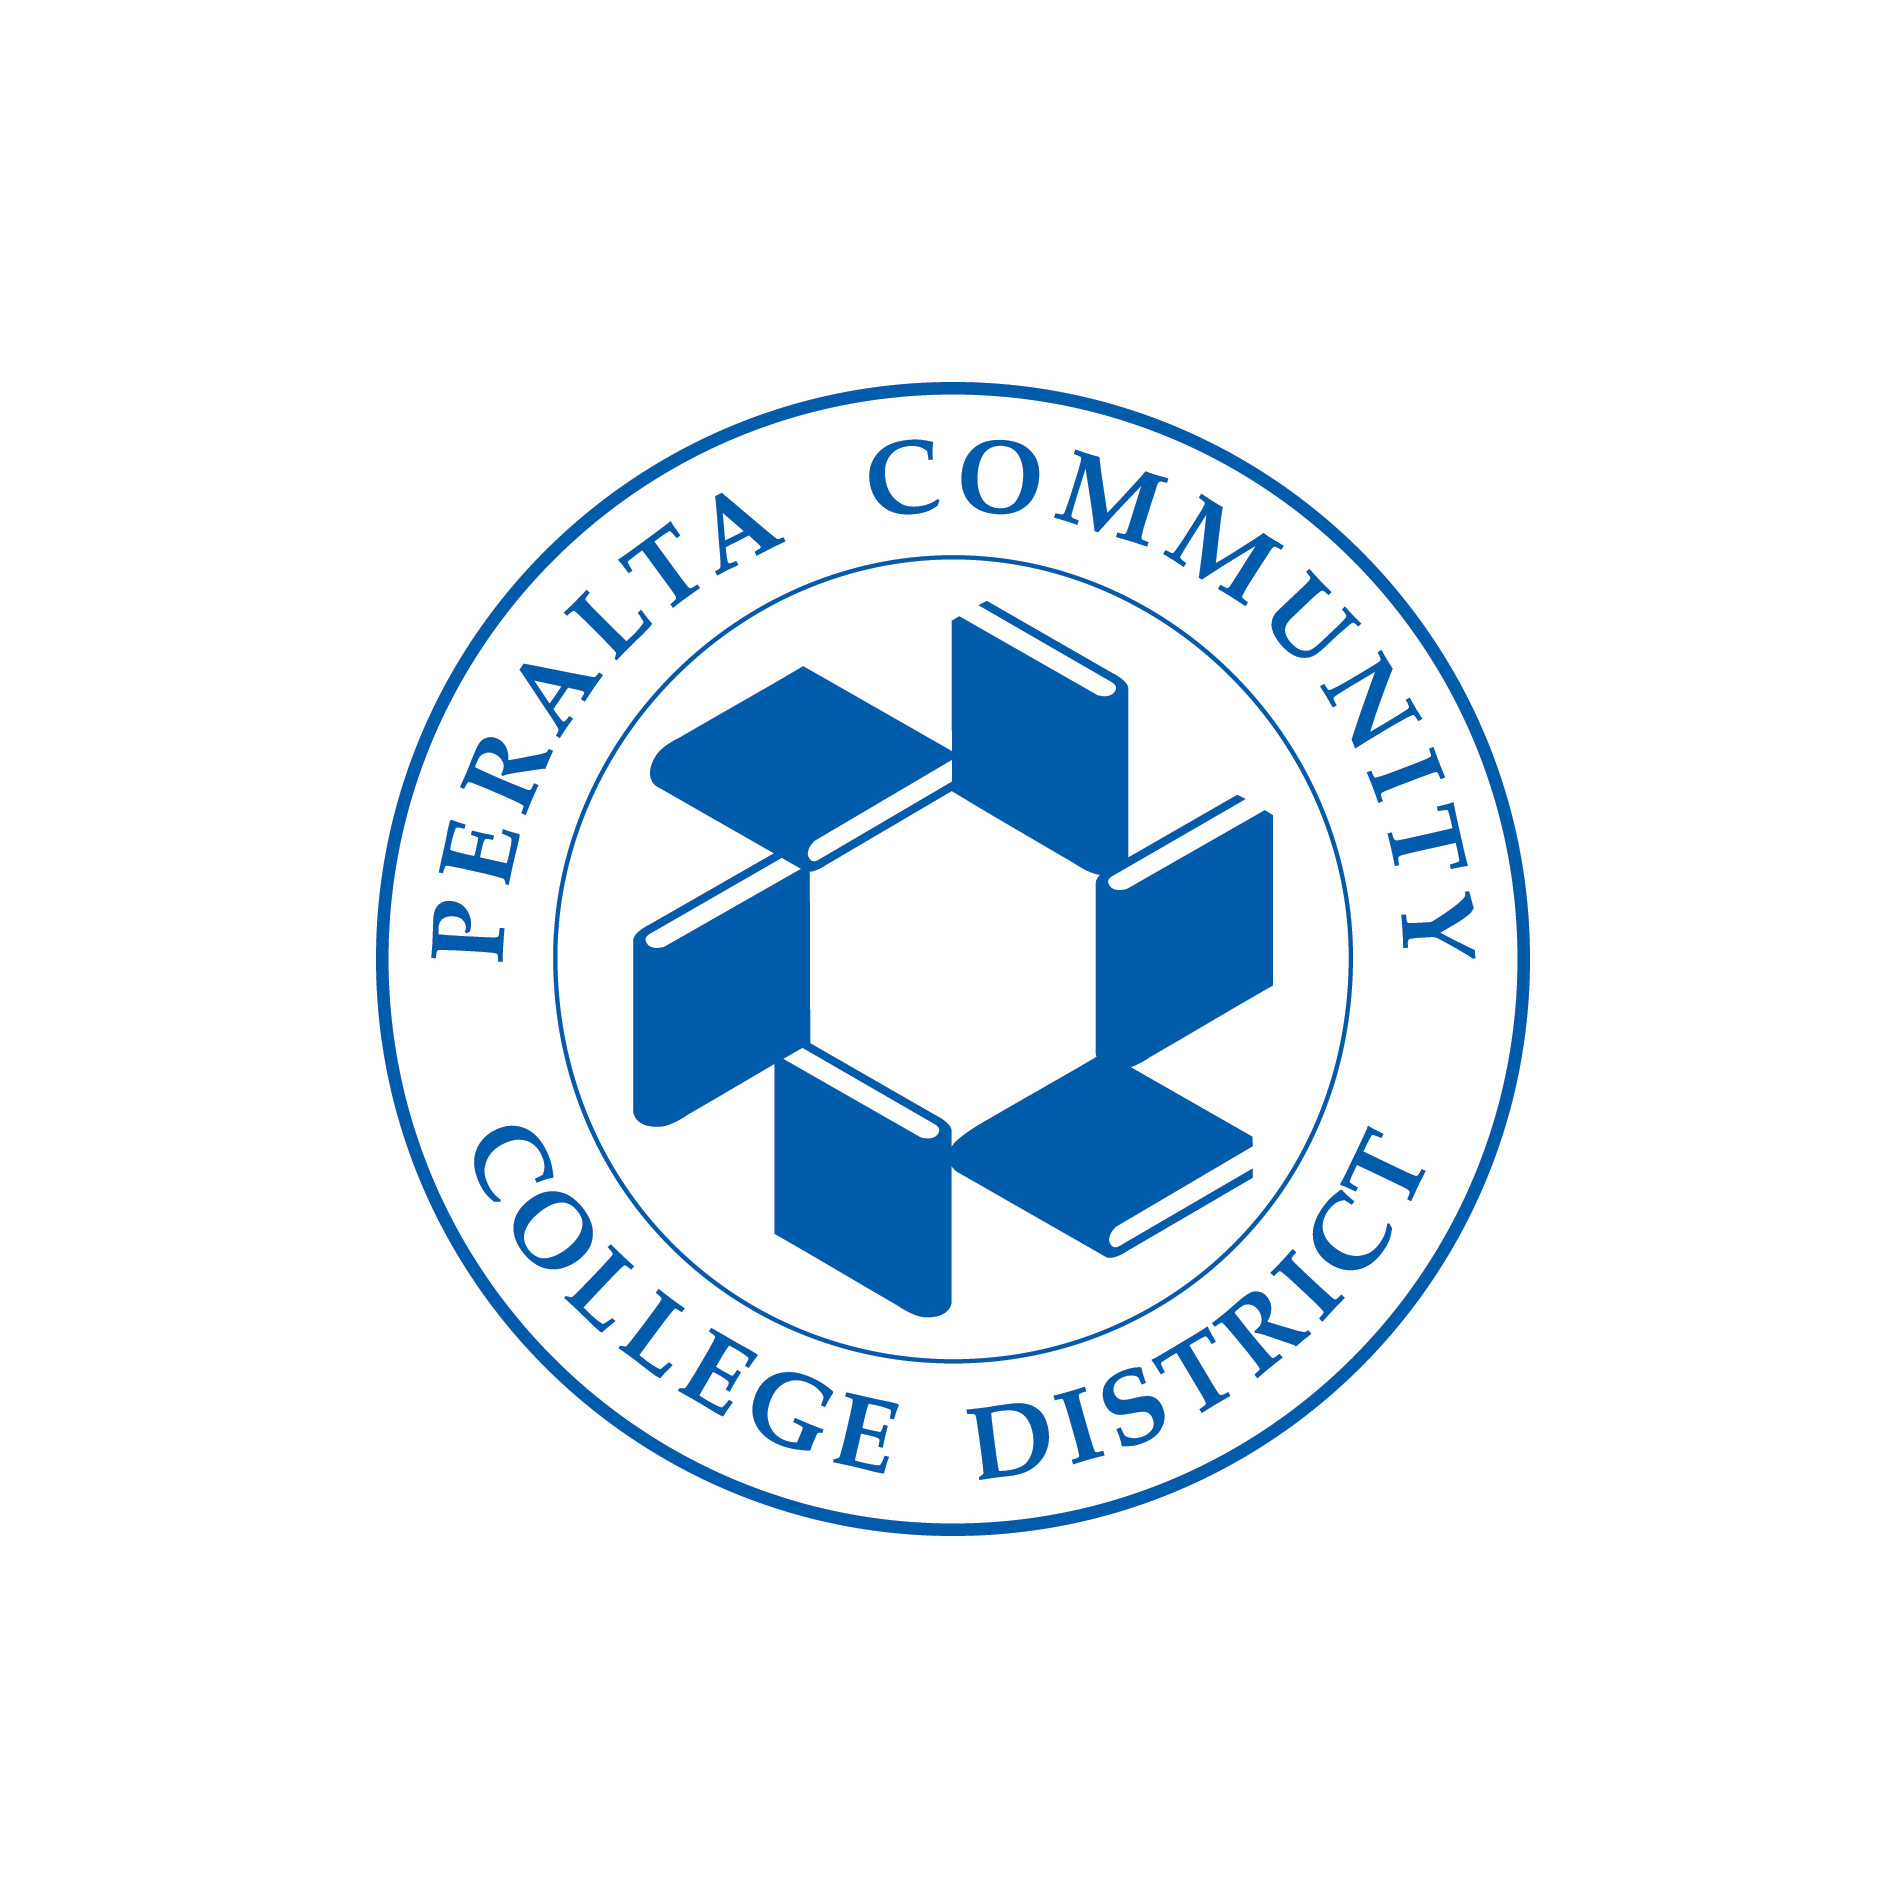 Peralta Community College District